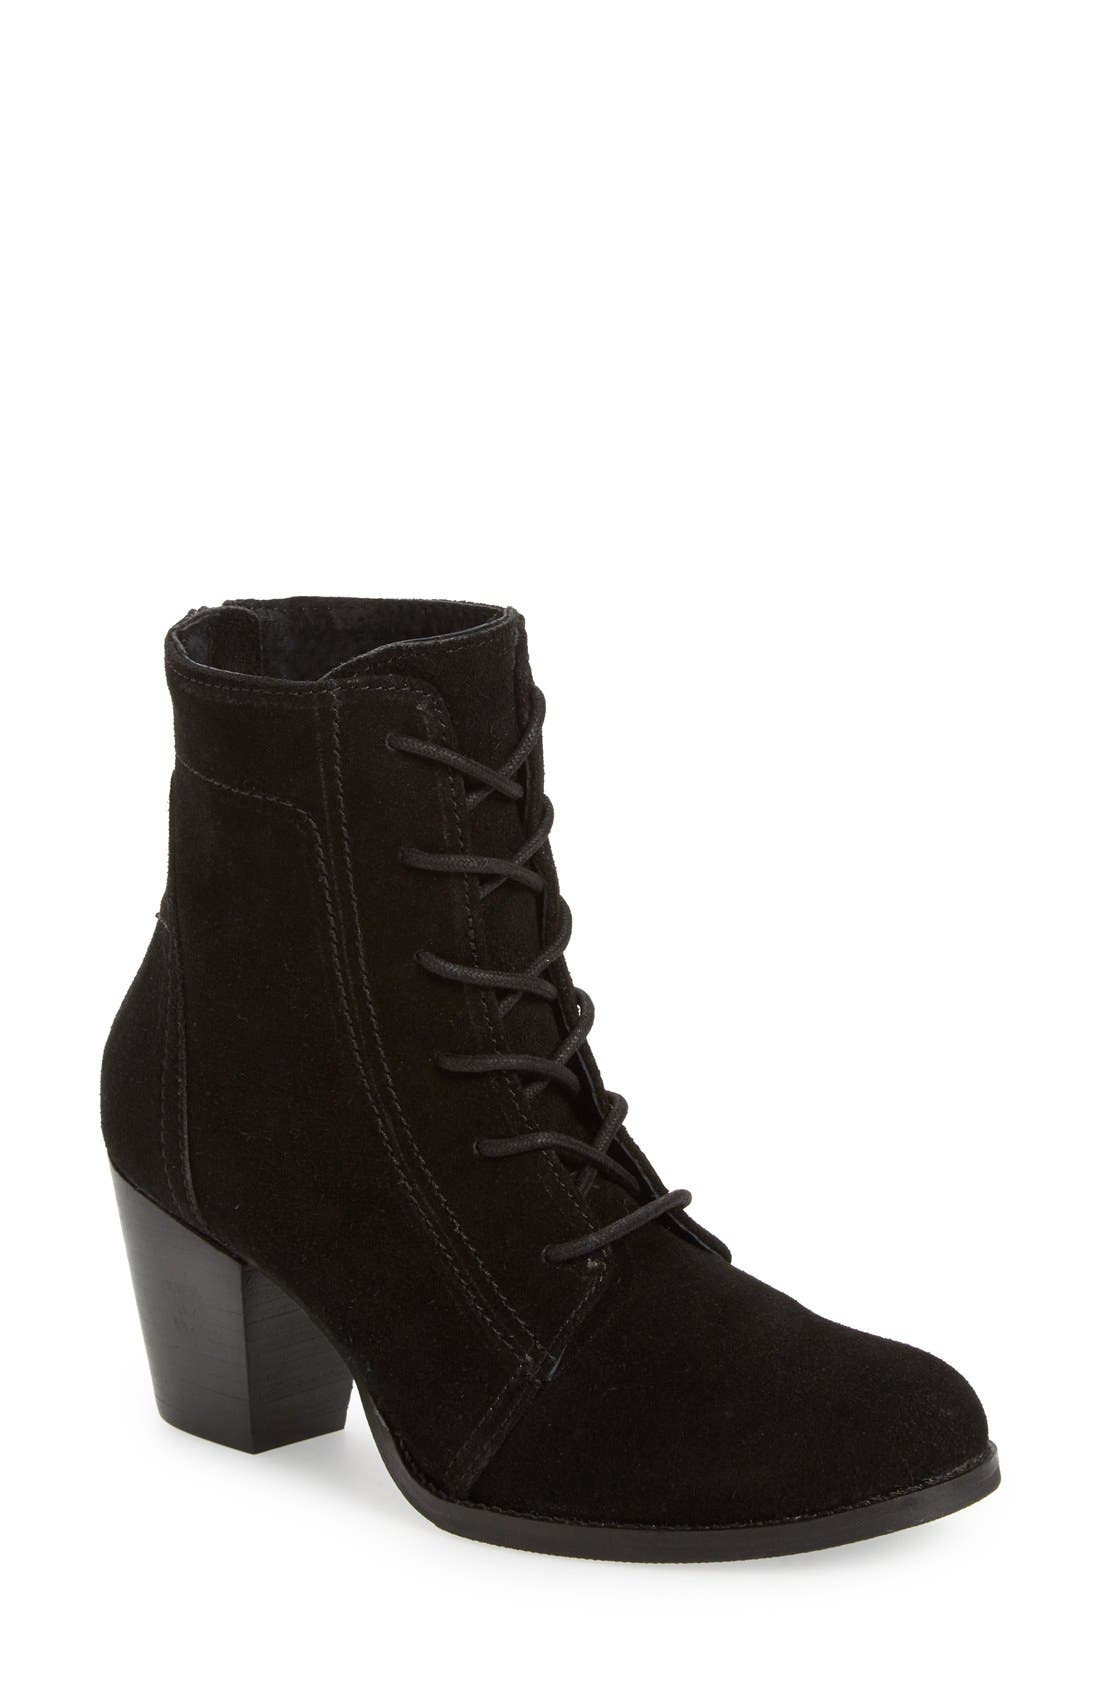 COCONUTS BY MATISSE Matisse 'Constance' Lace-Up Bootie